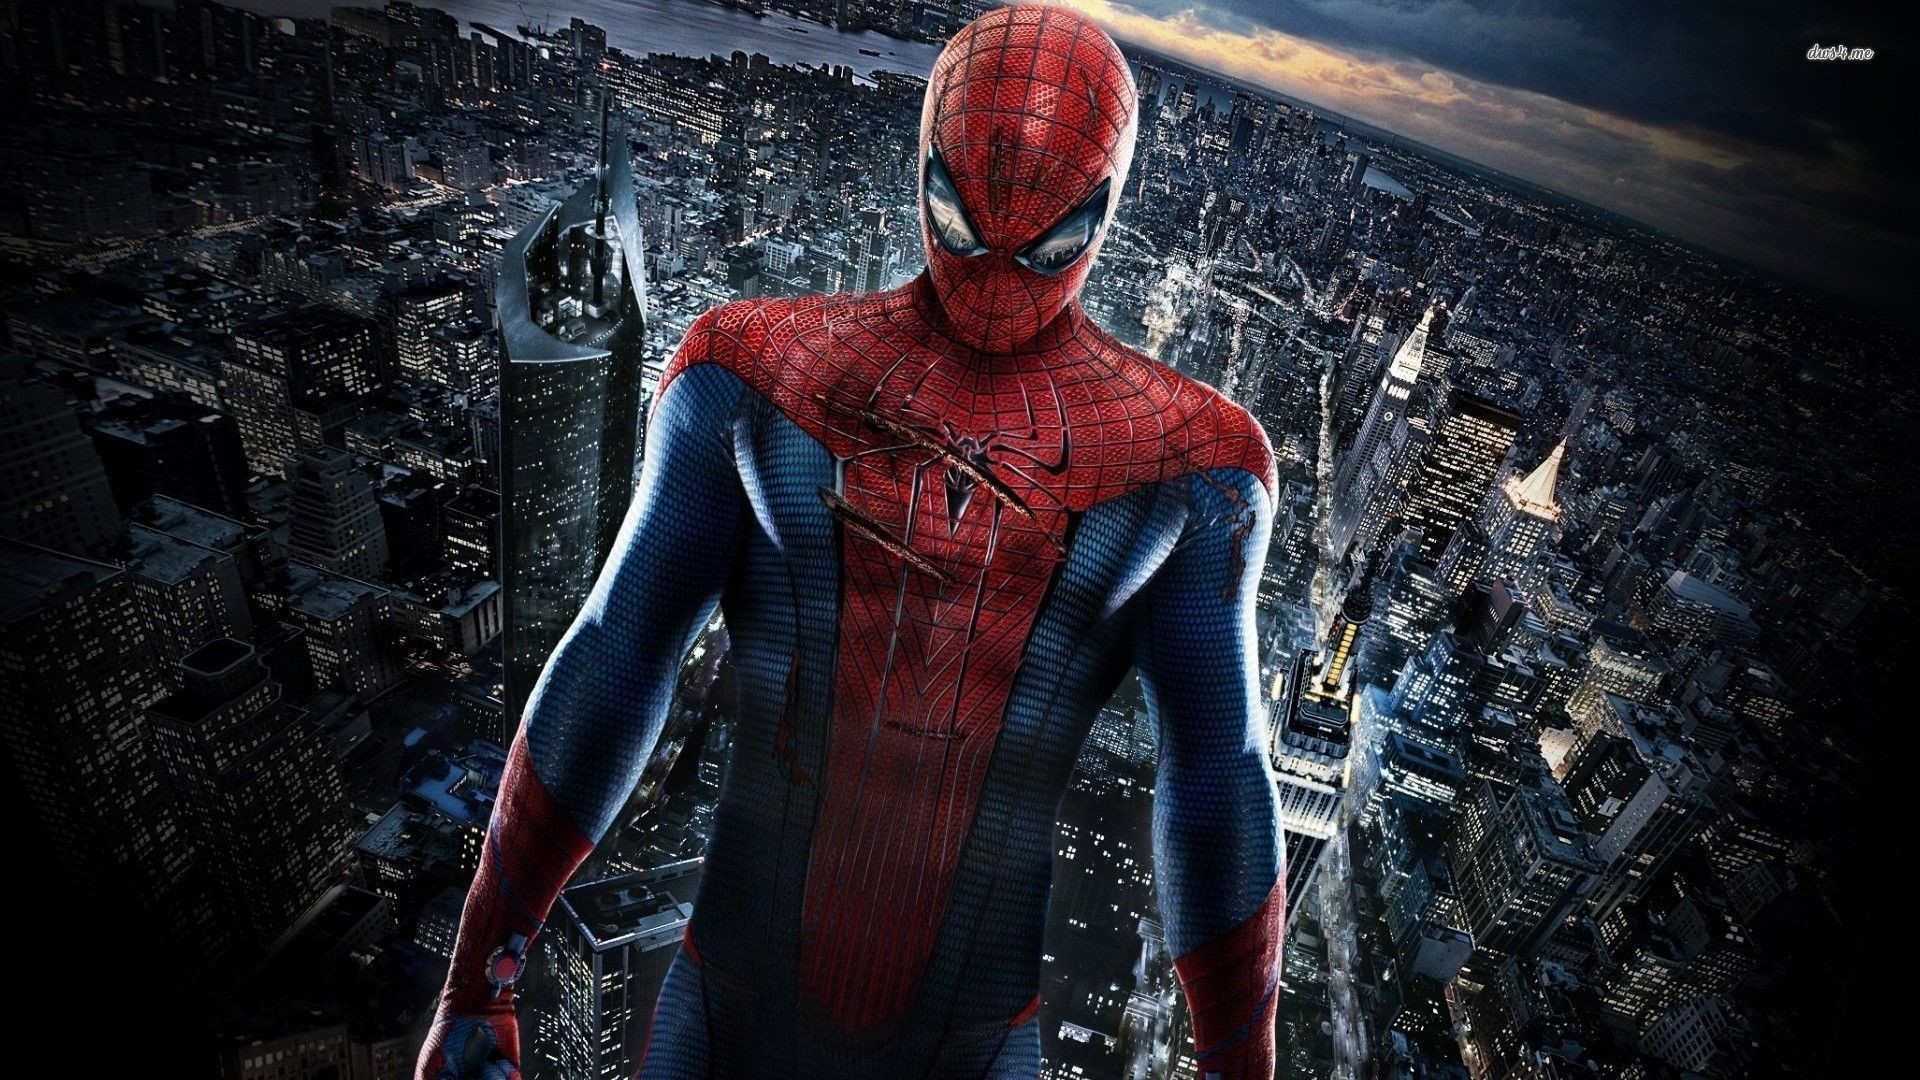 1920x1080 The Amazing Spider-Man guarding the city wallpaper ... 85 · Download · Res:  1920x1440 ...